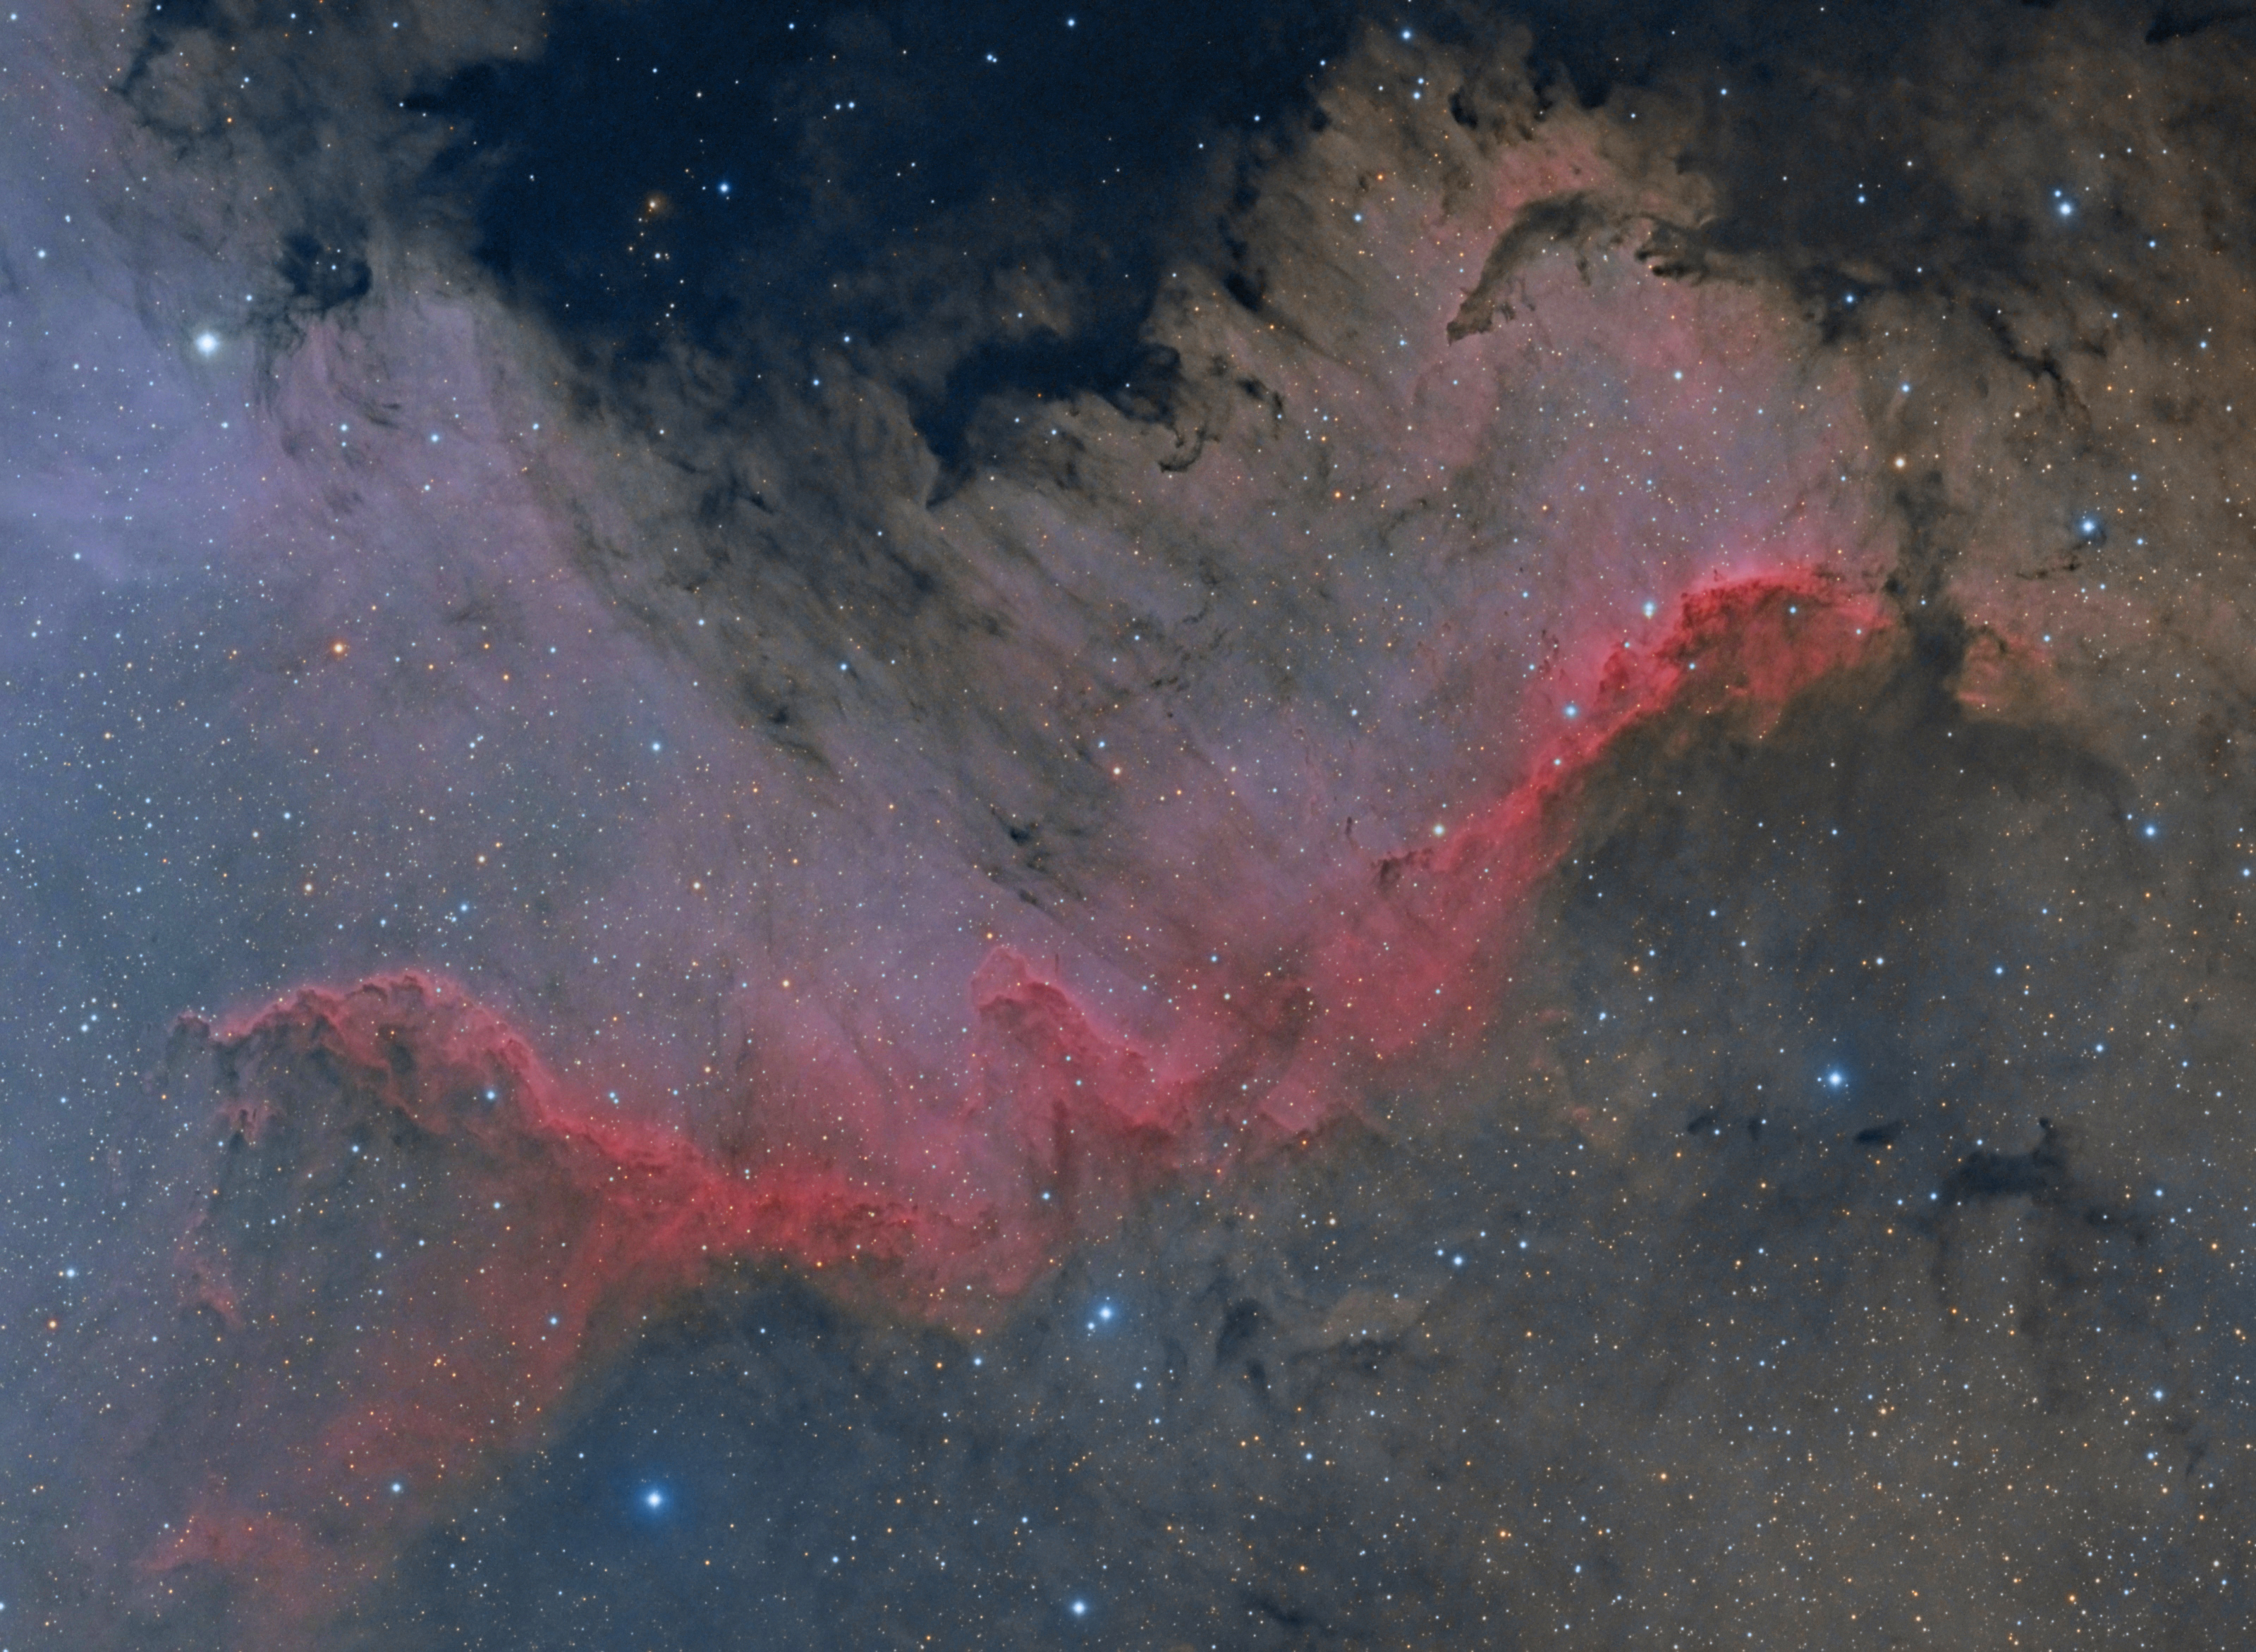 Stargazer Snaps Amazing View of Giant 'Wall' In Space (Photo)